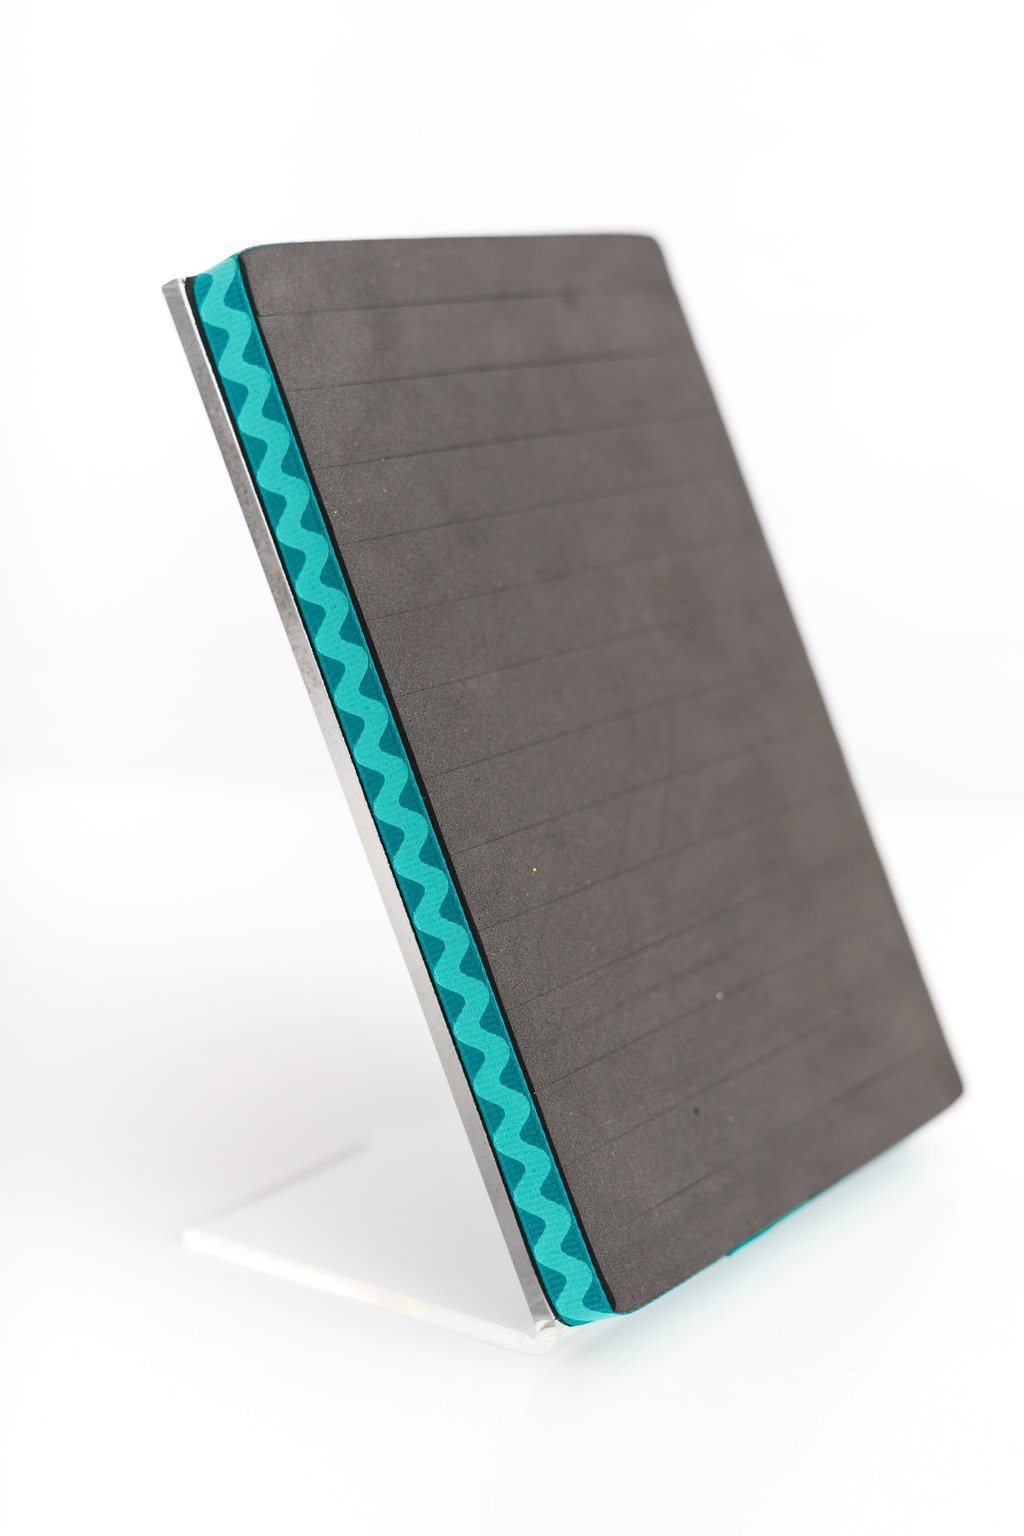 Stud & Hook Earring Holder - Turquoise Rick-Rack Design Ribbon, 5x7 Jewelry Display - Keep Earring Backs ON! by Never Lost Earrings